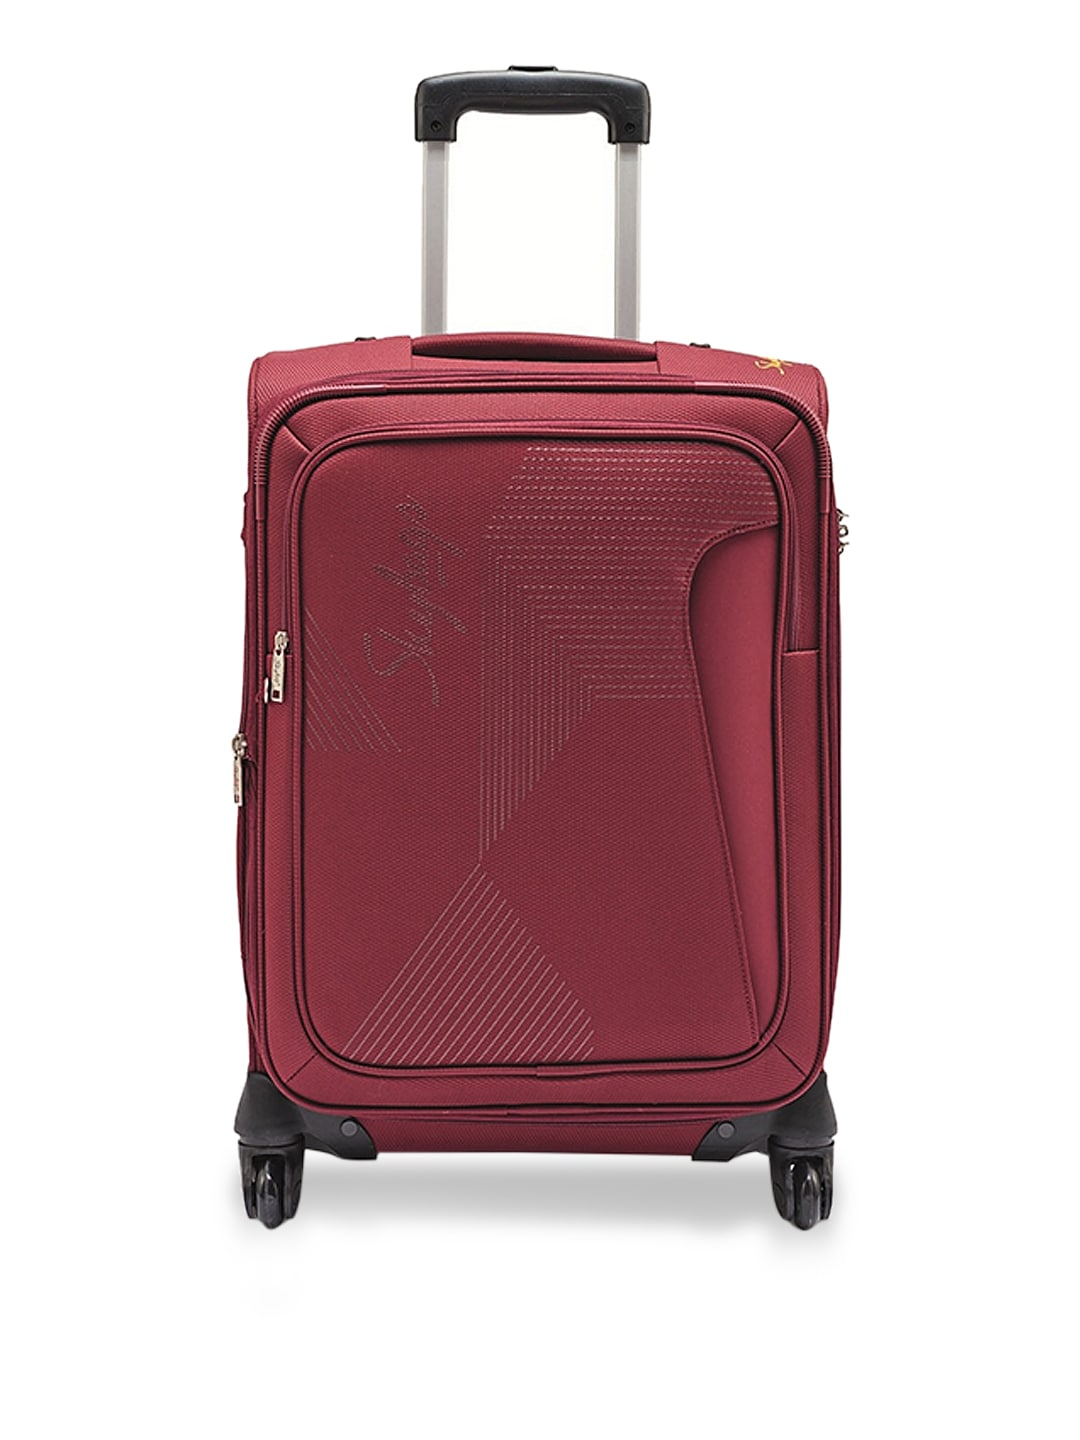 Skybags Trolley Bag - Buy Skybags Trolley Bag Online in India